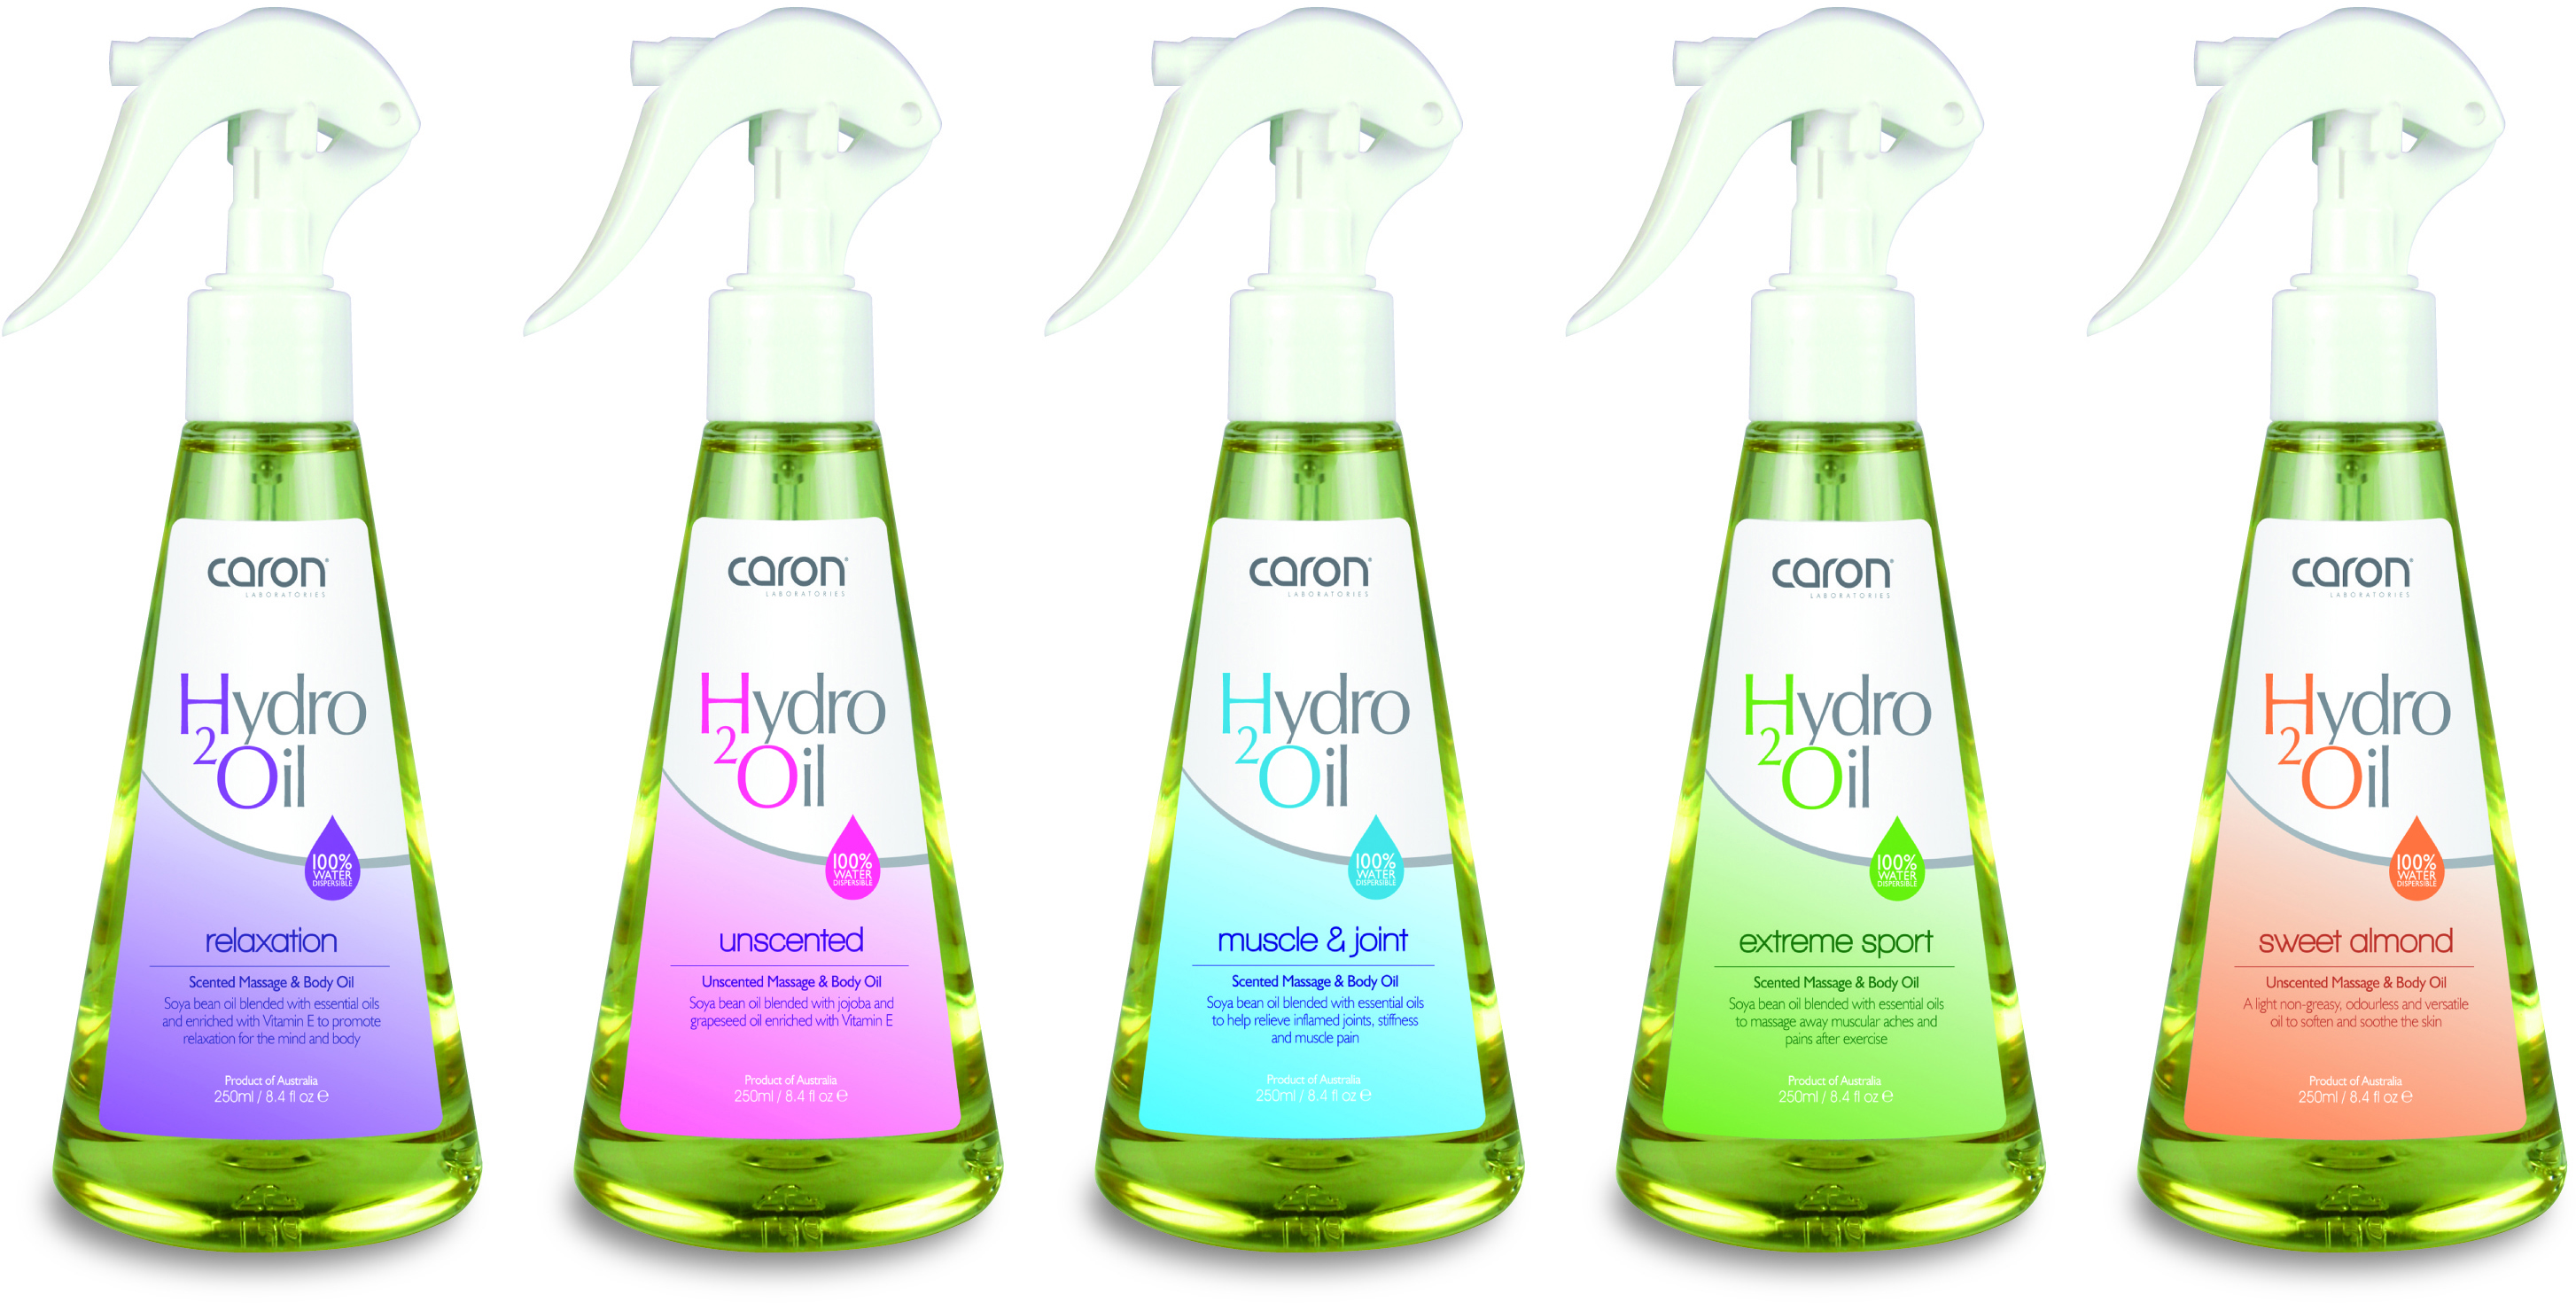 hydro-2-oils-bottles.jpg